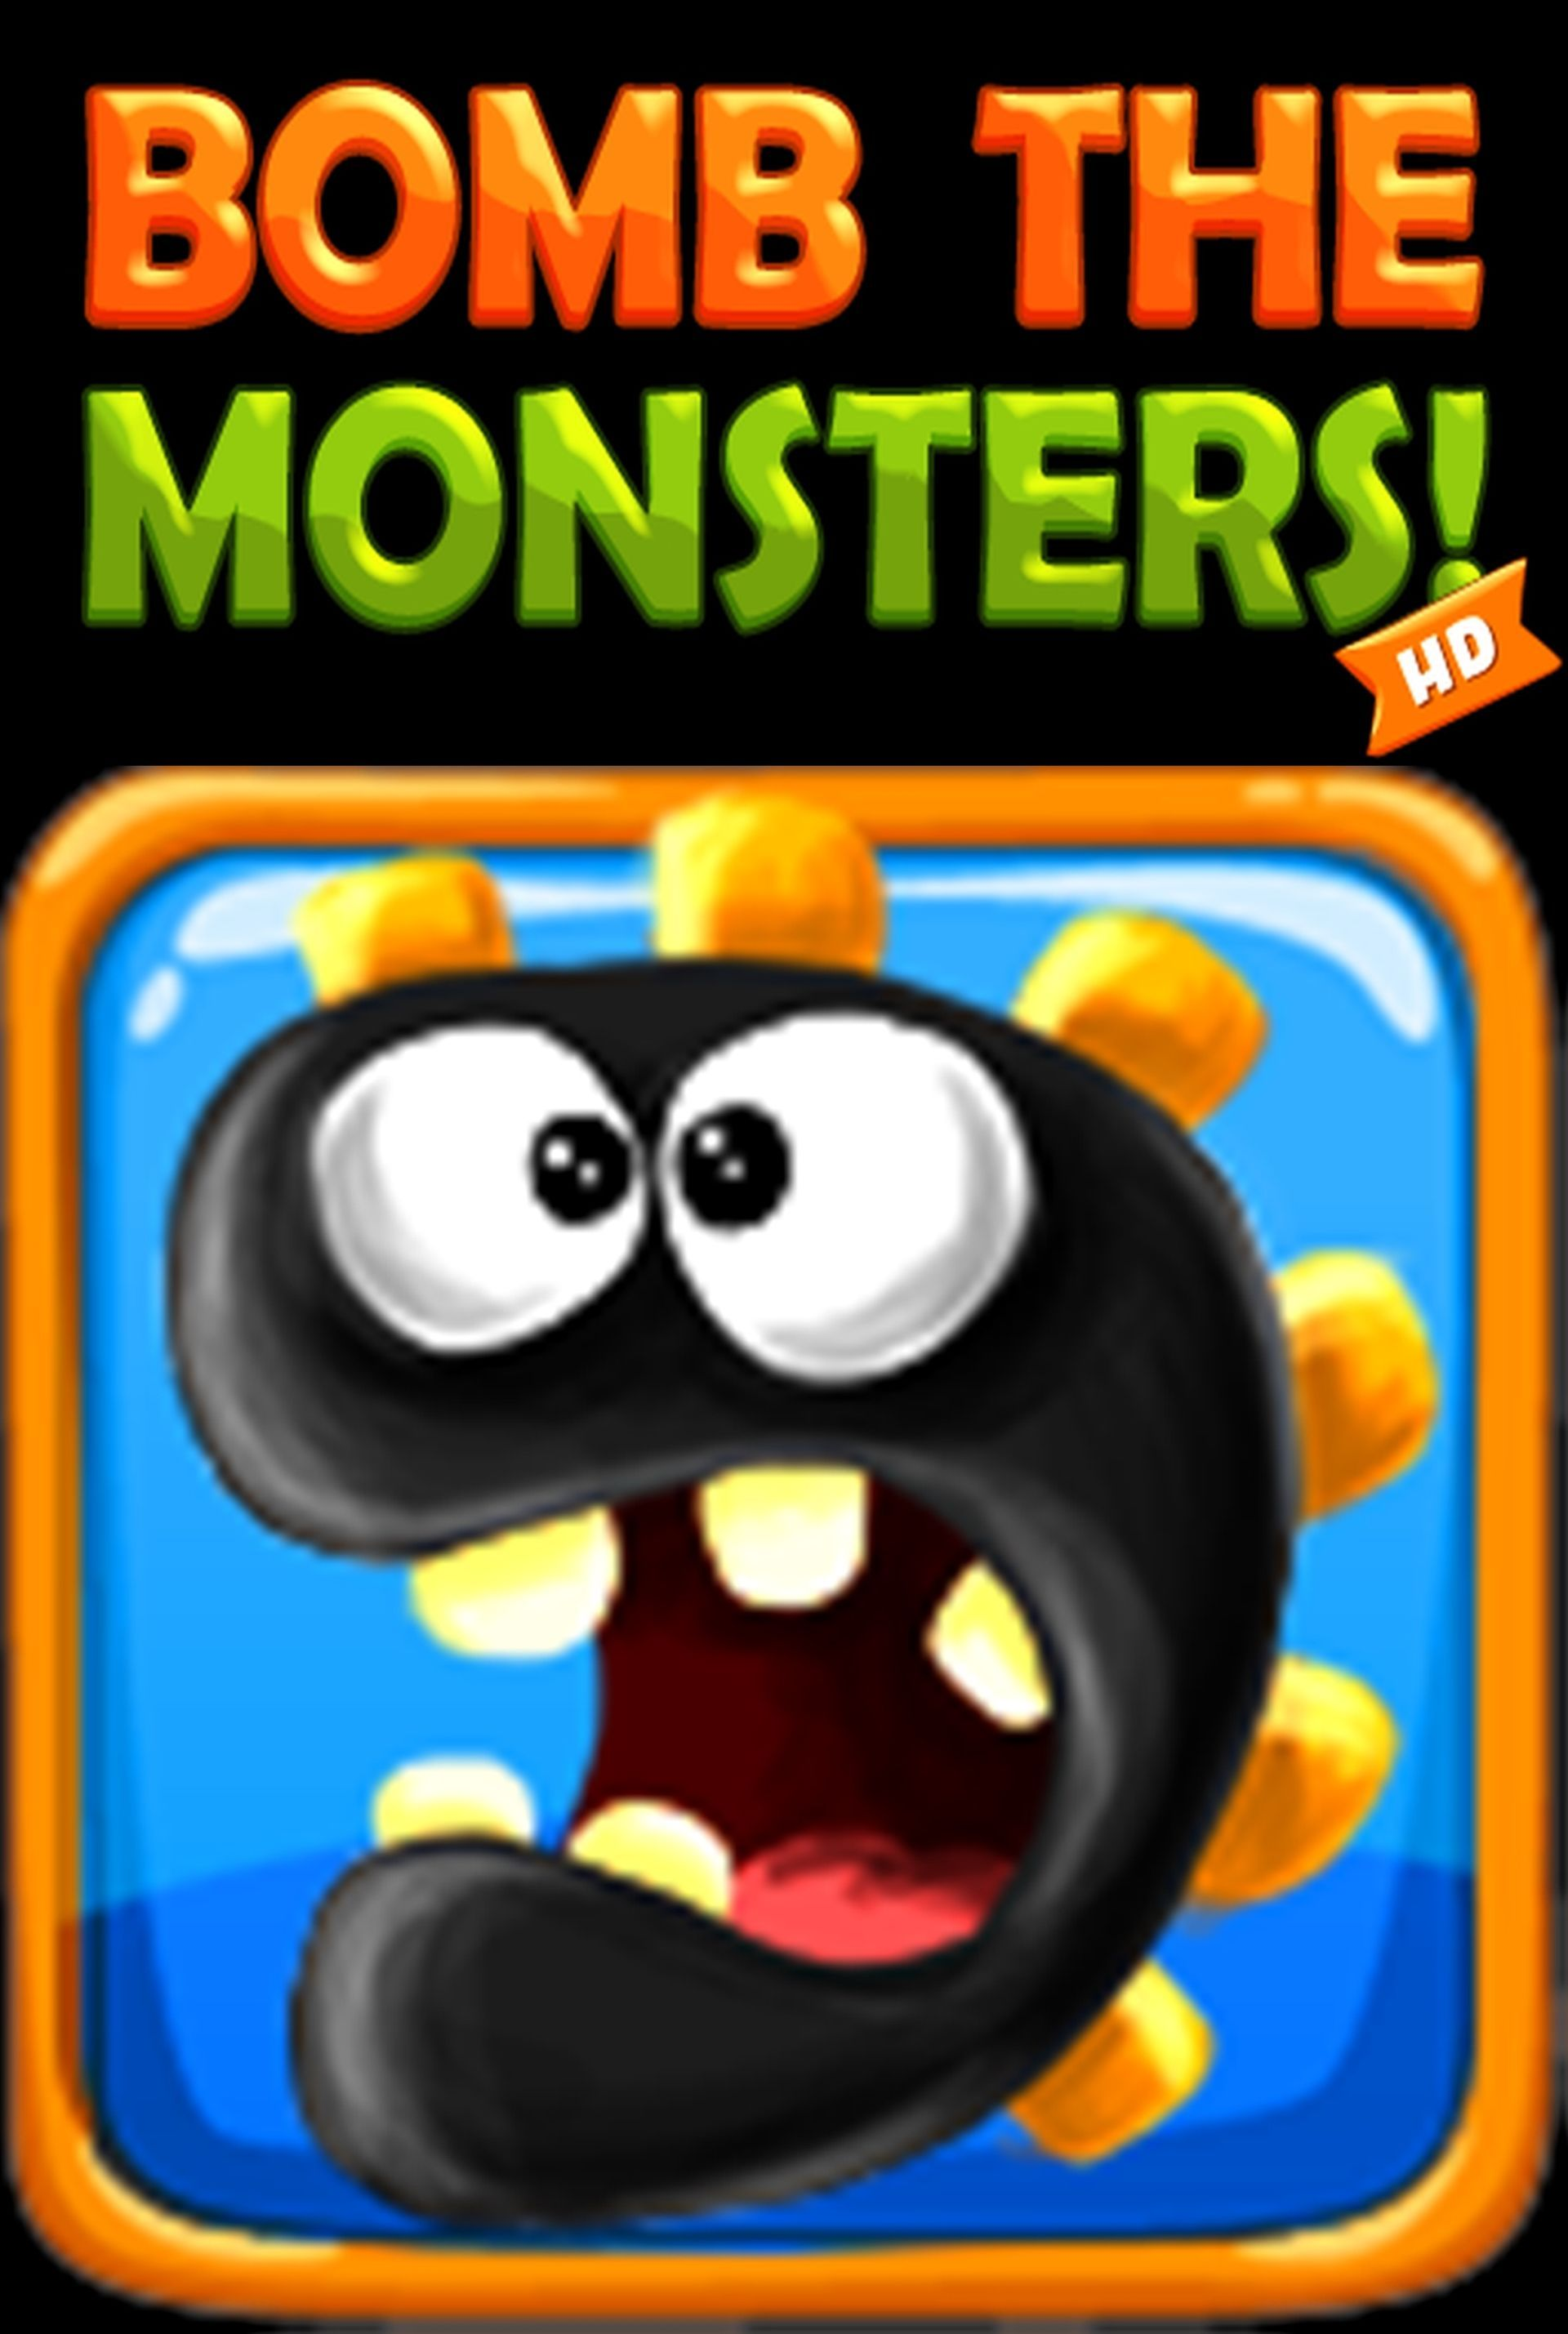 Bomb The Monsters.